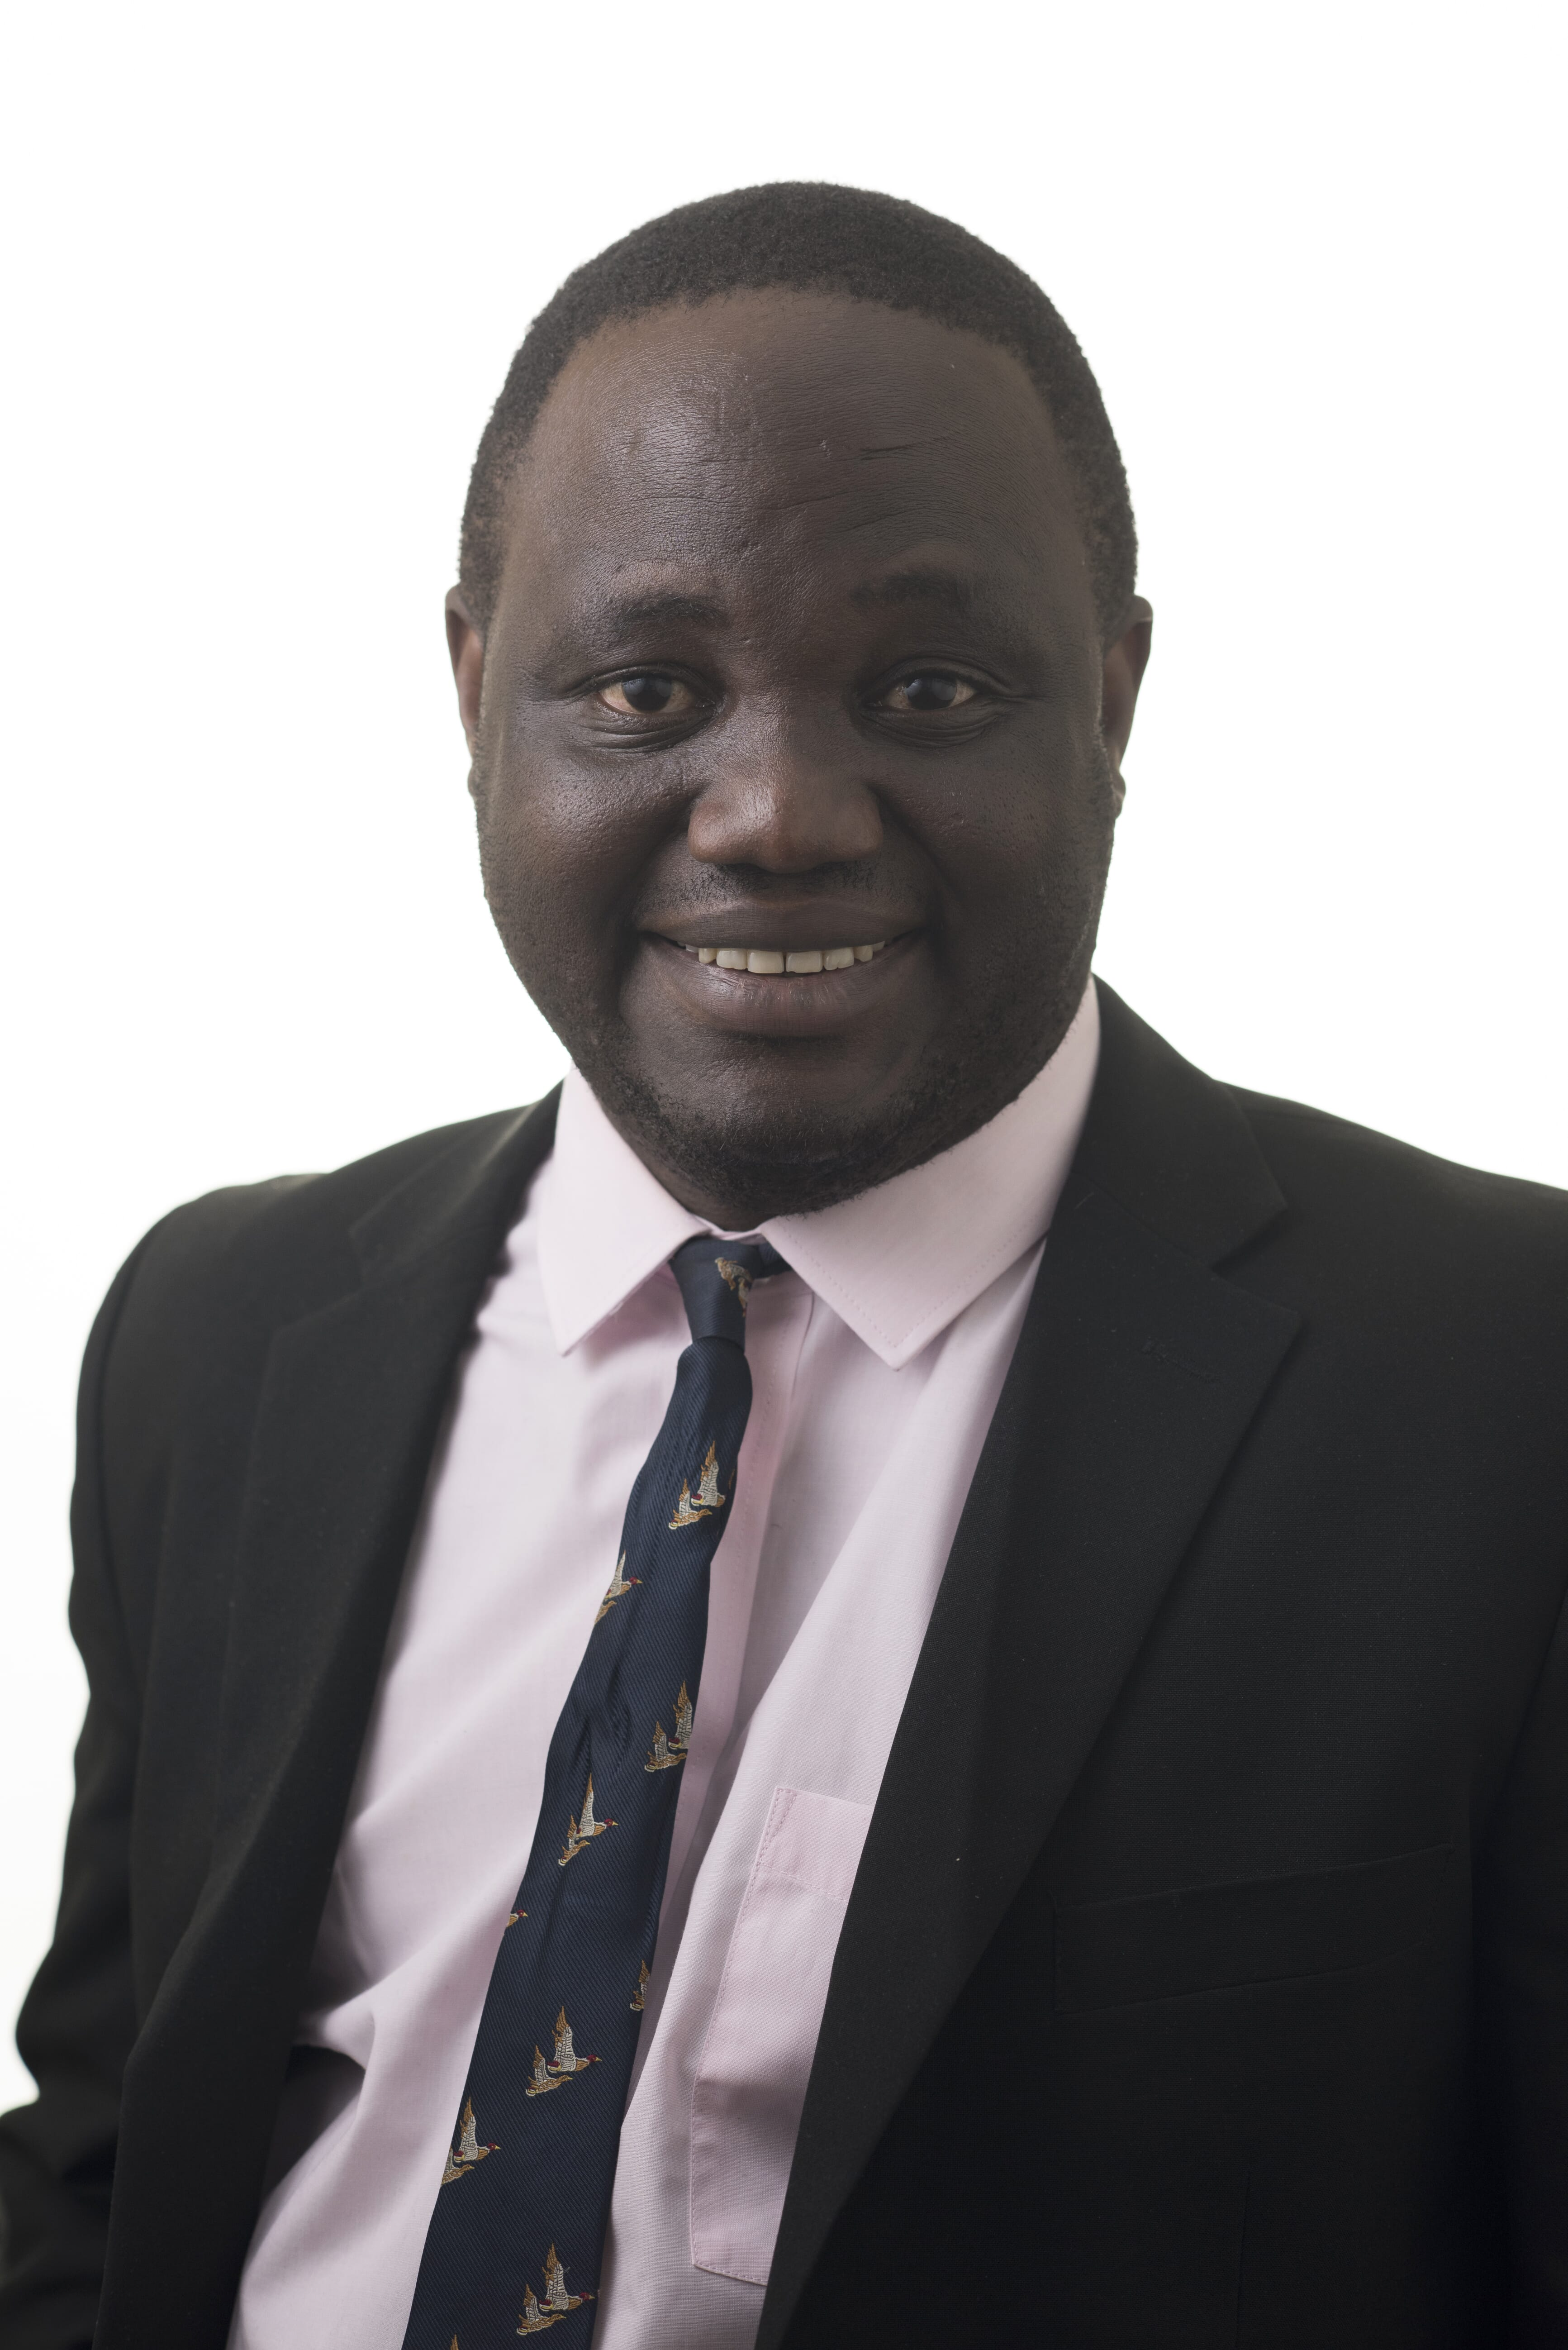 Hammed O'odusanya: Associate Solicitor - specialist in Personal Injury and Litigation